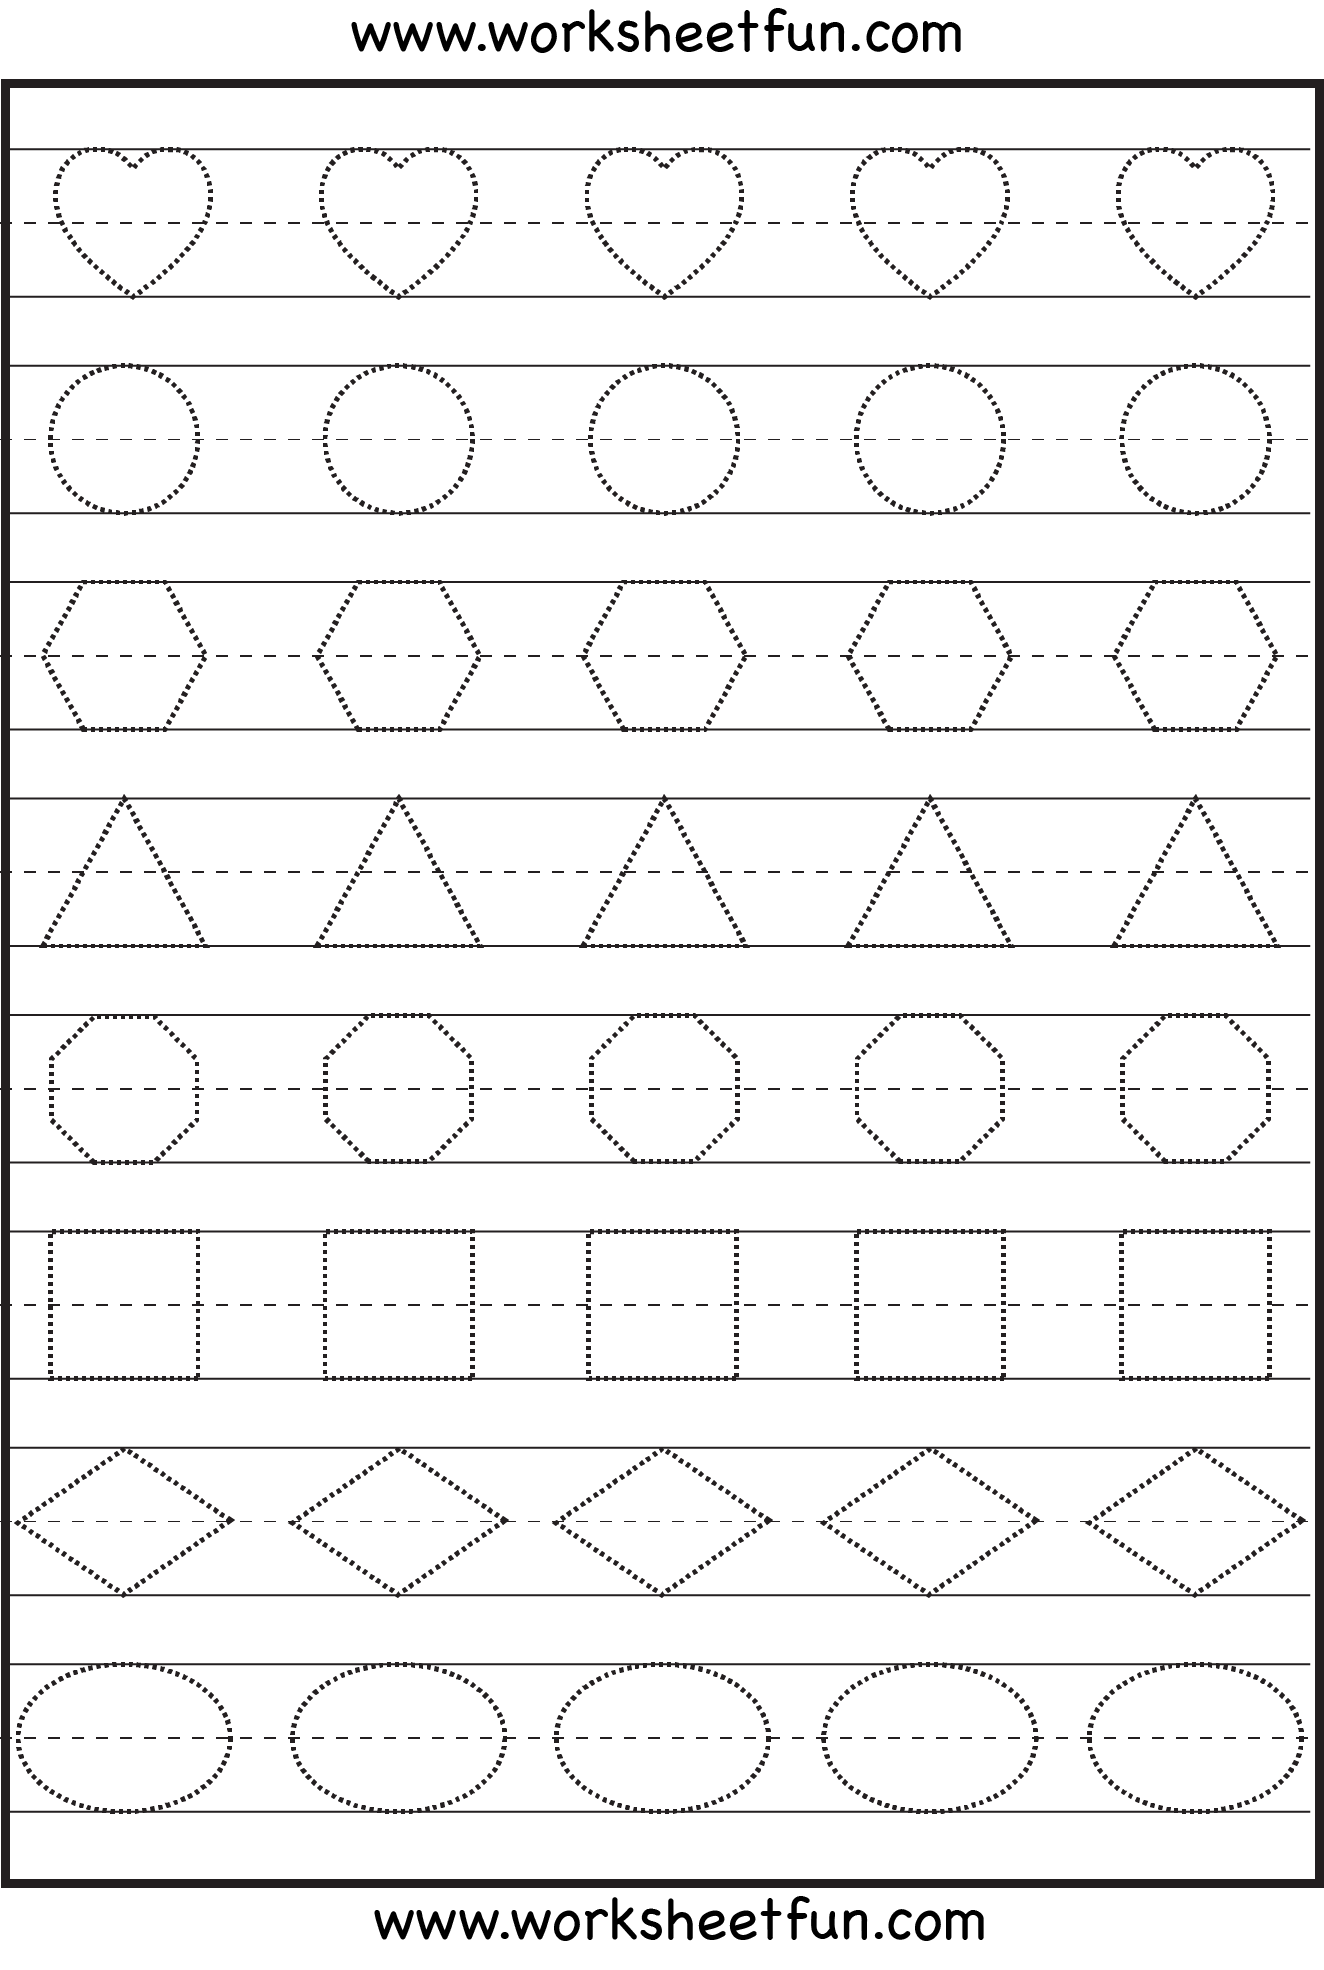 Worksheet Worksheets For Preschoolers 6 best images of free printable school worksheets preschool shapes